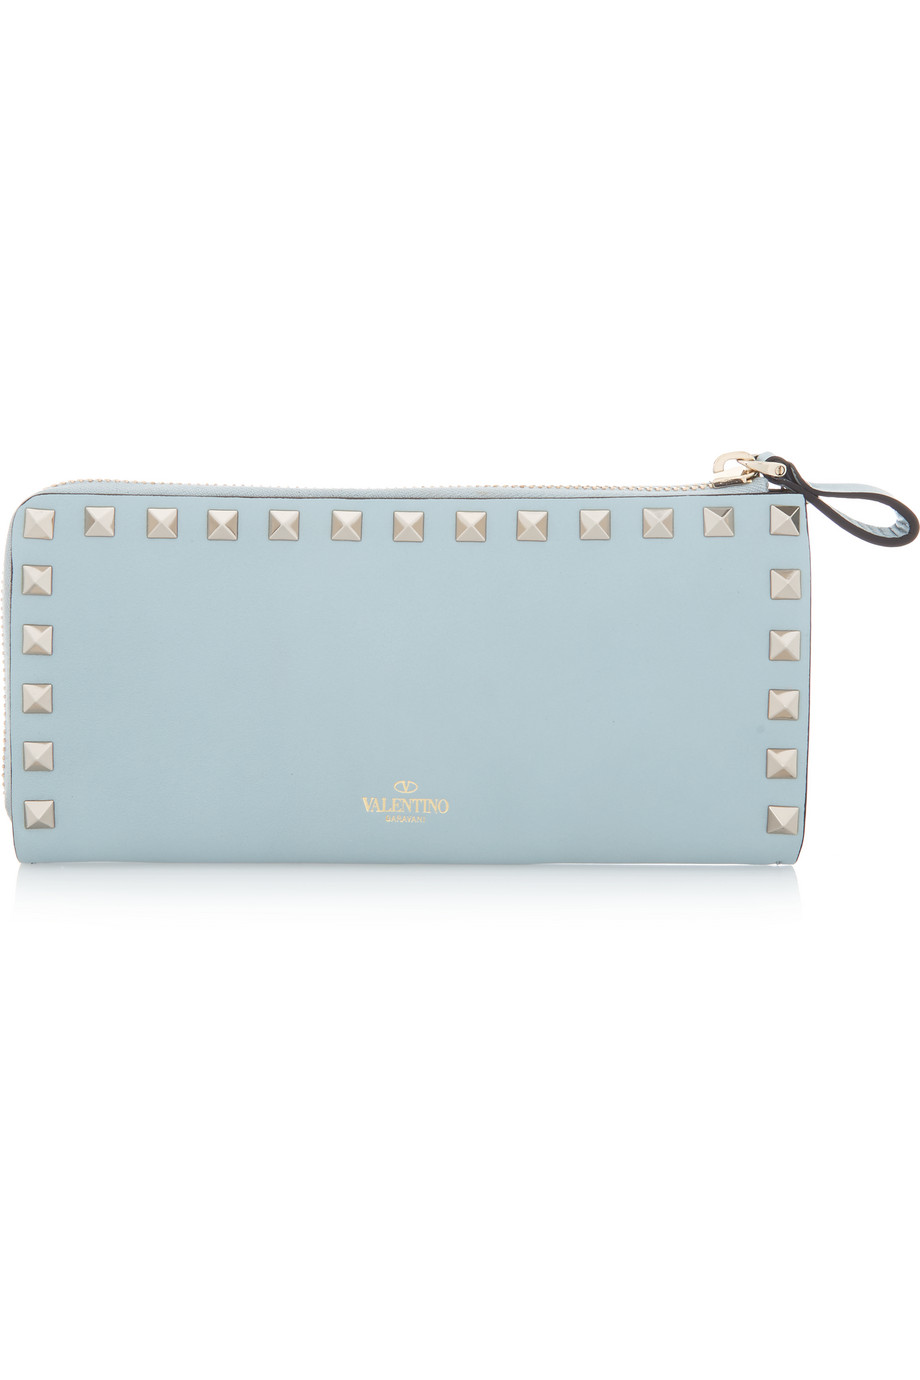 Valentino The Rockstud Leather Continental Wallet, Sky Blue, Women's